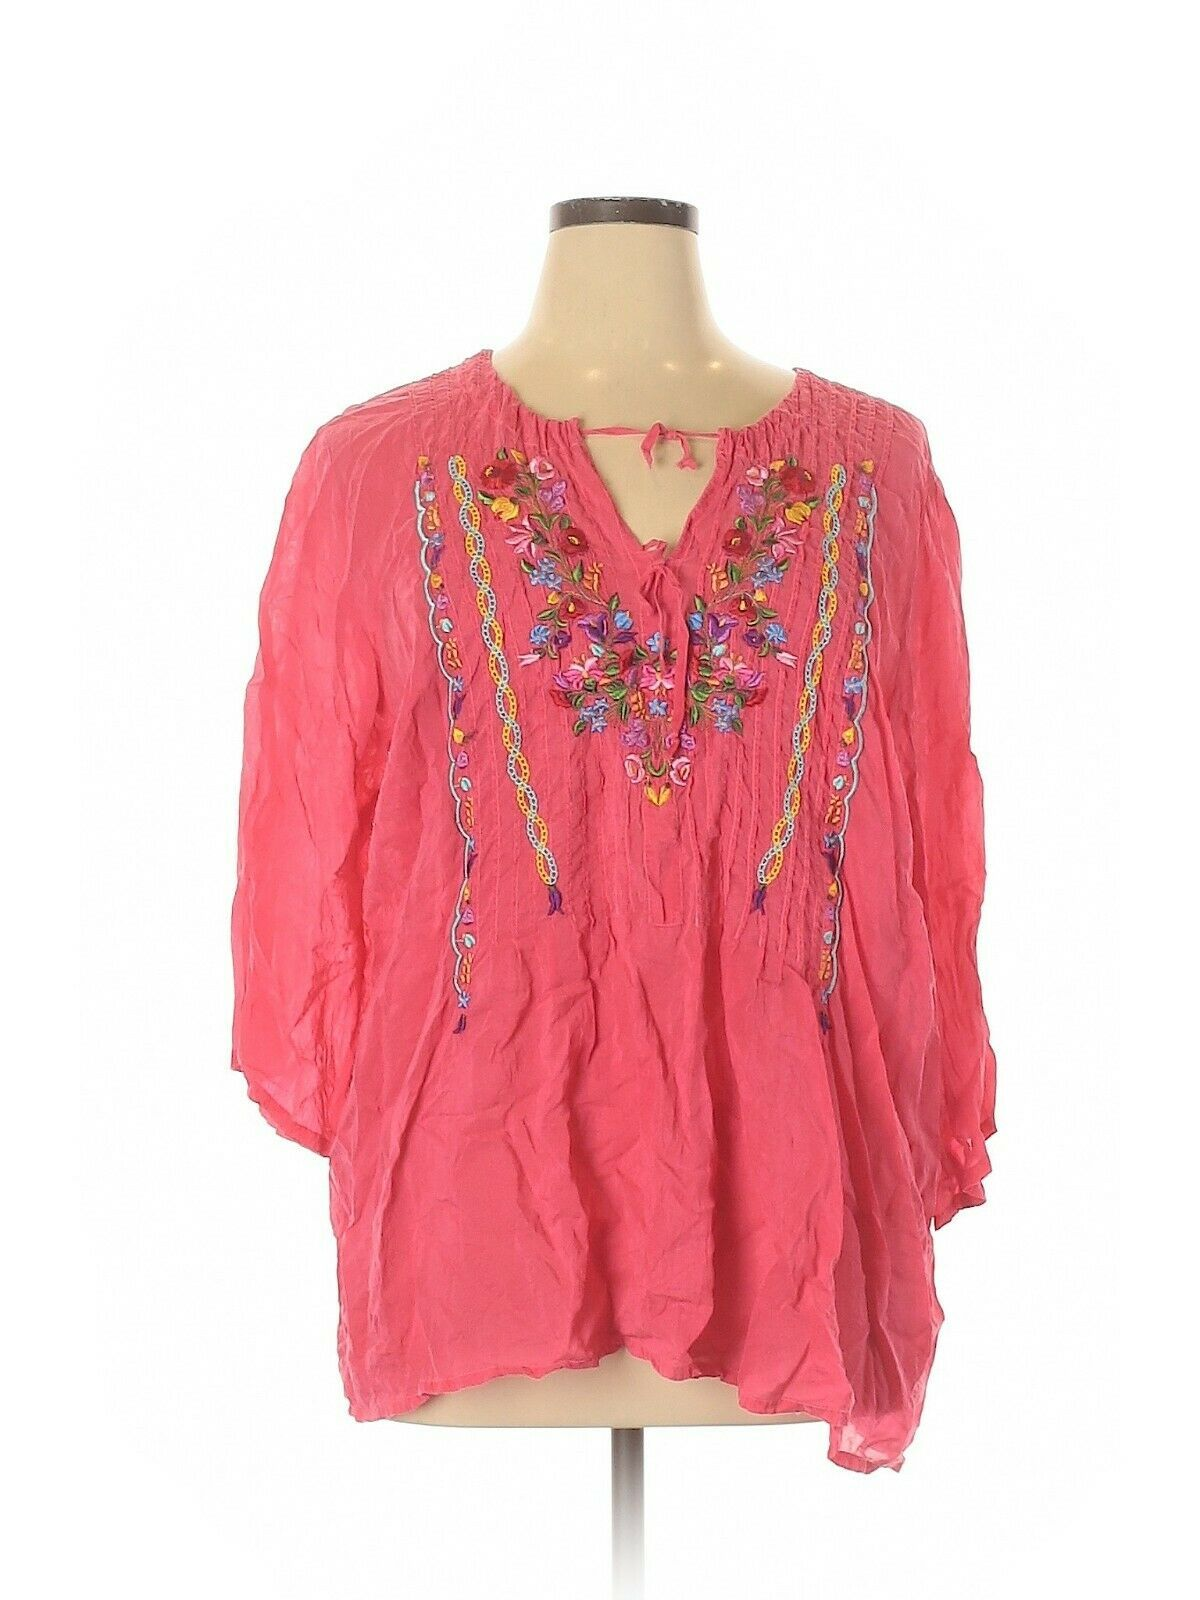 Johnny Was Women's Top Plus Size 1X Tunic Pink Boho Embroidered Relaxed Fit